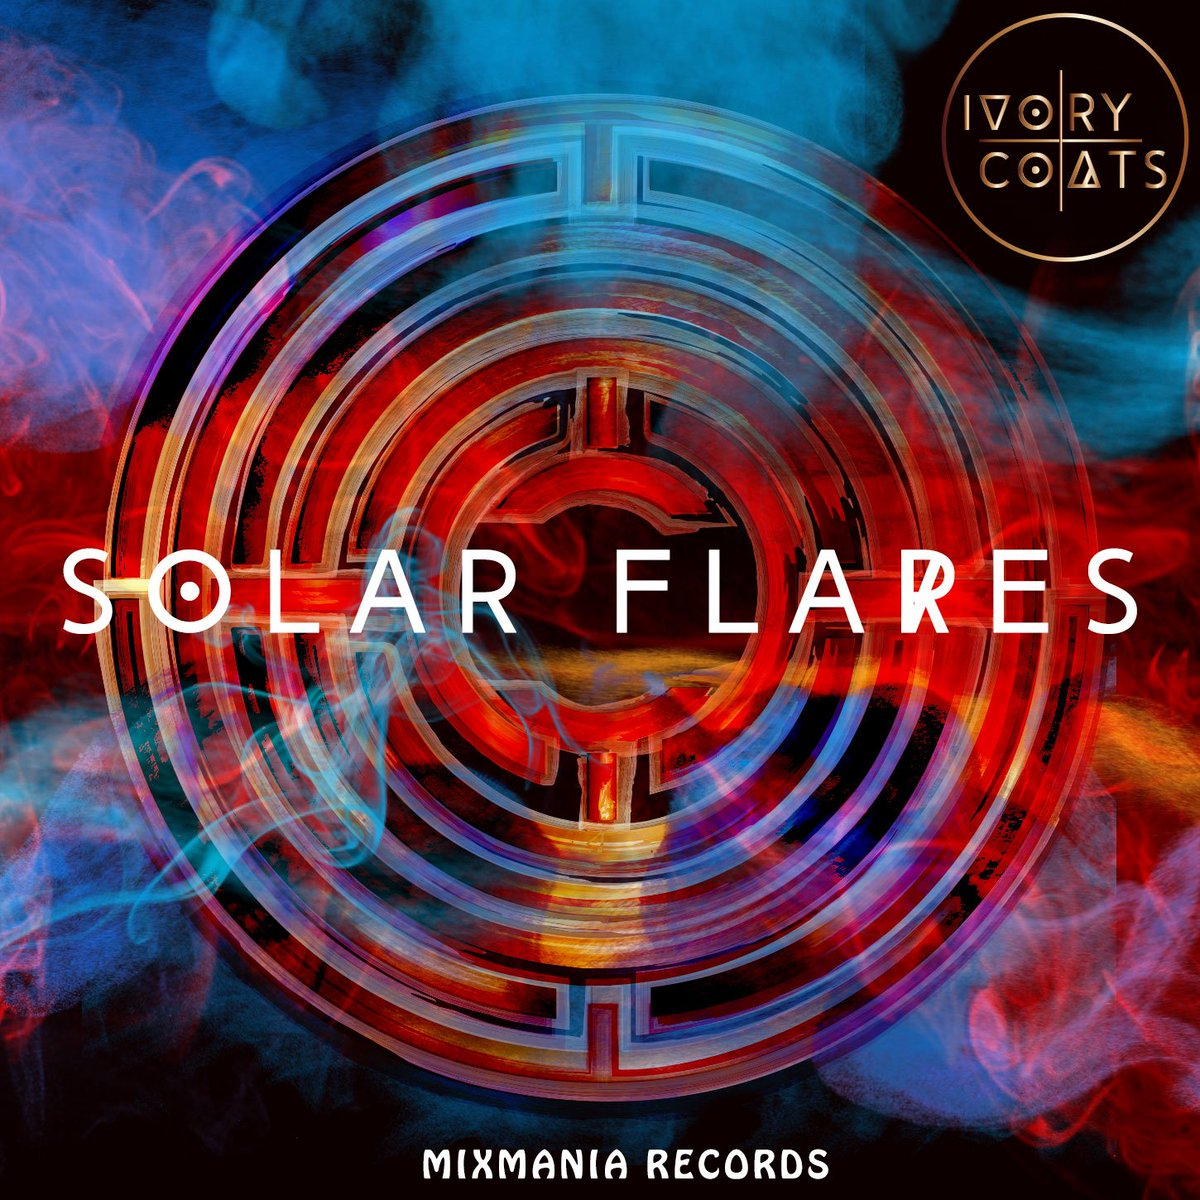 Solar Flares By Ivory Coats Out Now! On Beatport! #techhouse #housemusic   https://www. beatport.com/release/solar- flares-original-mix/1842371 &nbsp; … <br>http://pic.twitter.com/G6J9lnkHSH